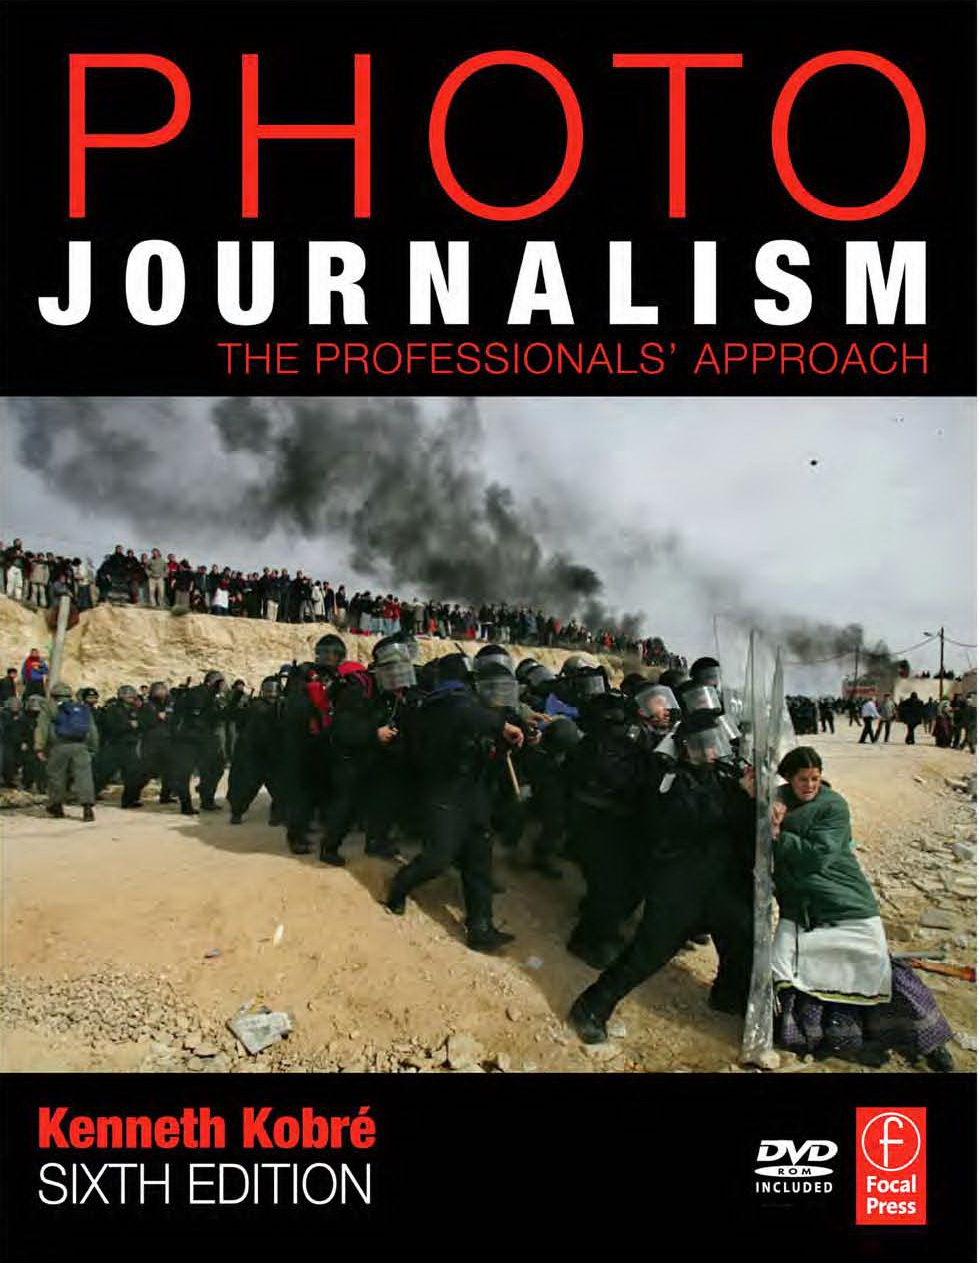 Focal_Photojournalism cover